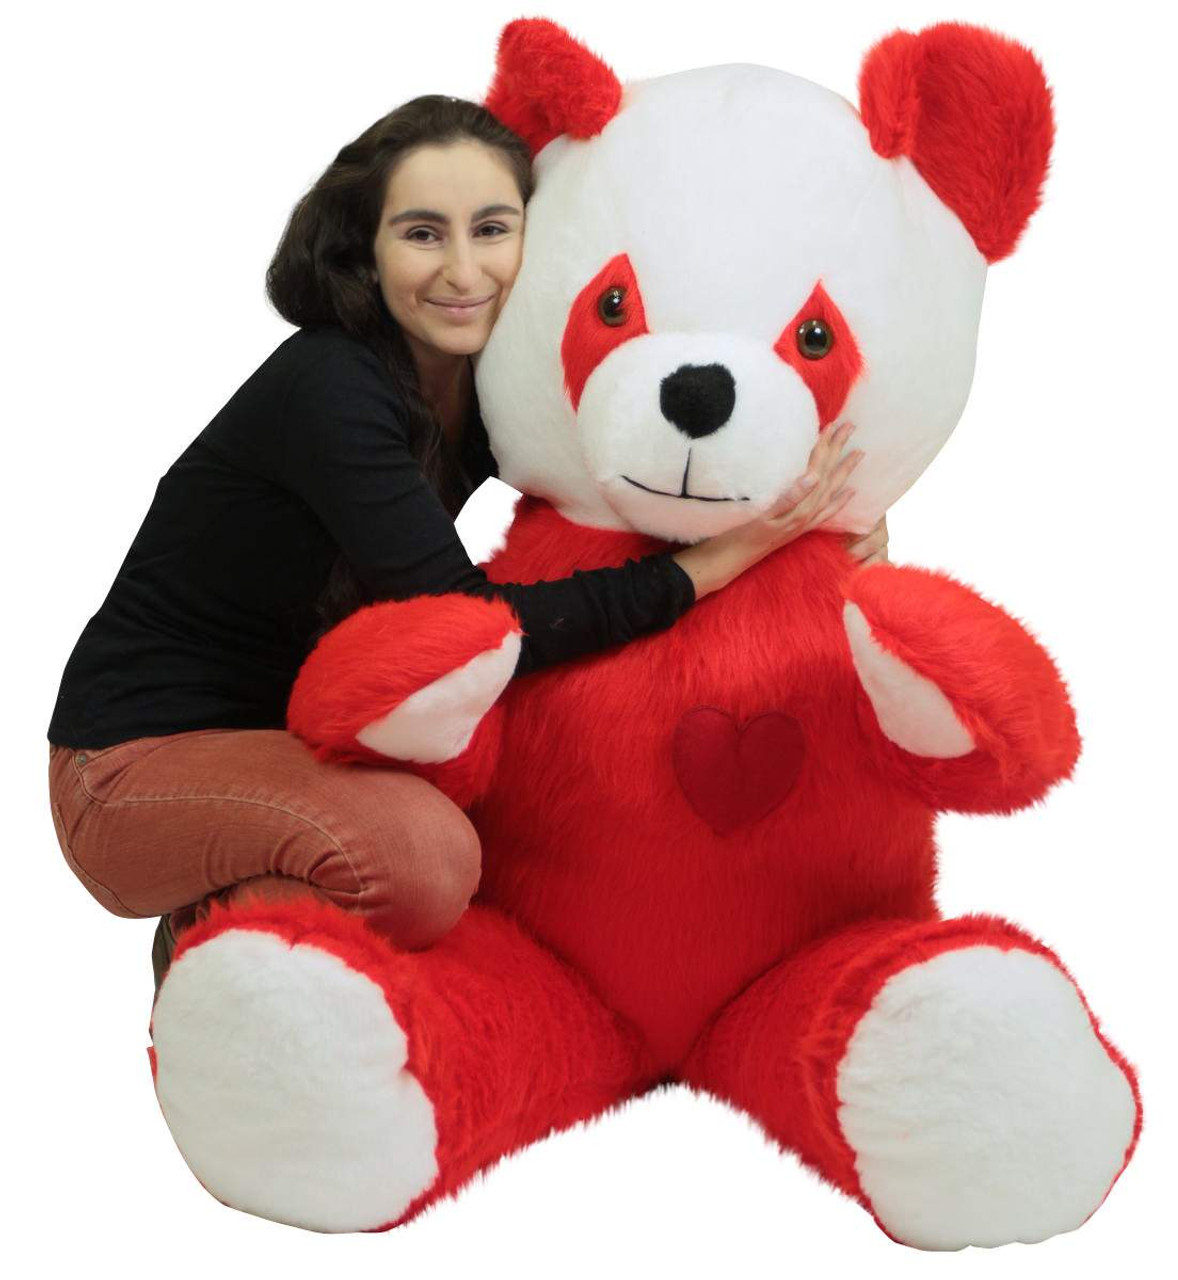 6 Foot Giant Stuffed Red Panda With Heart On Chest To Express Love